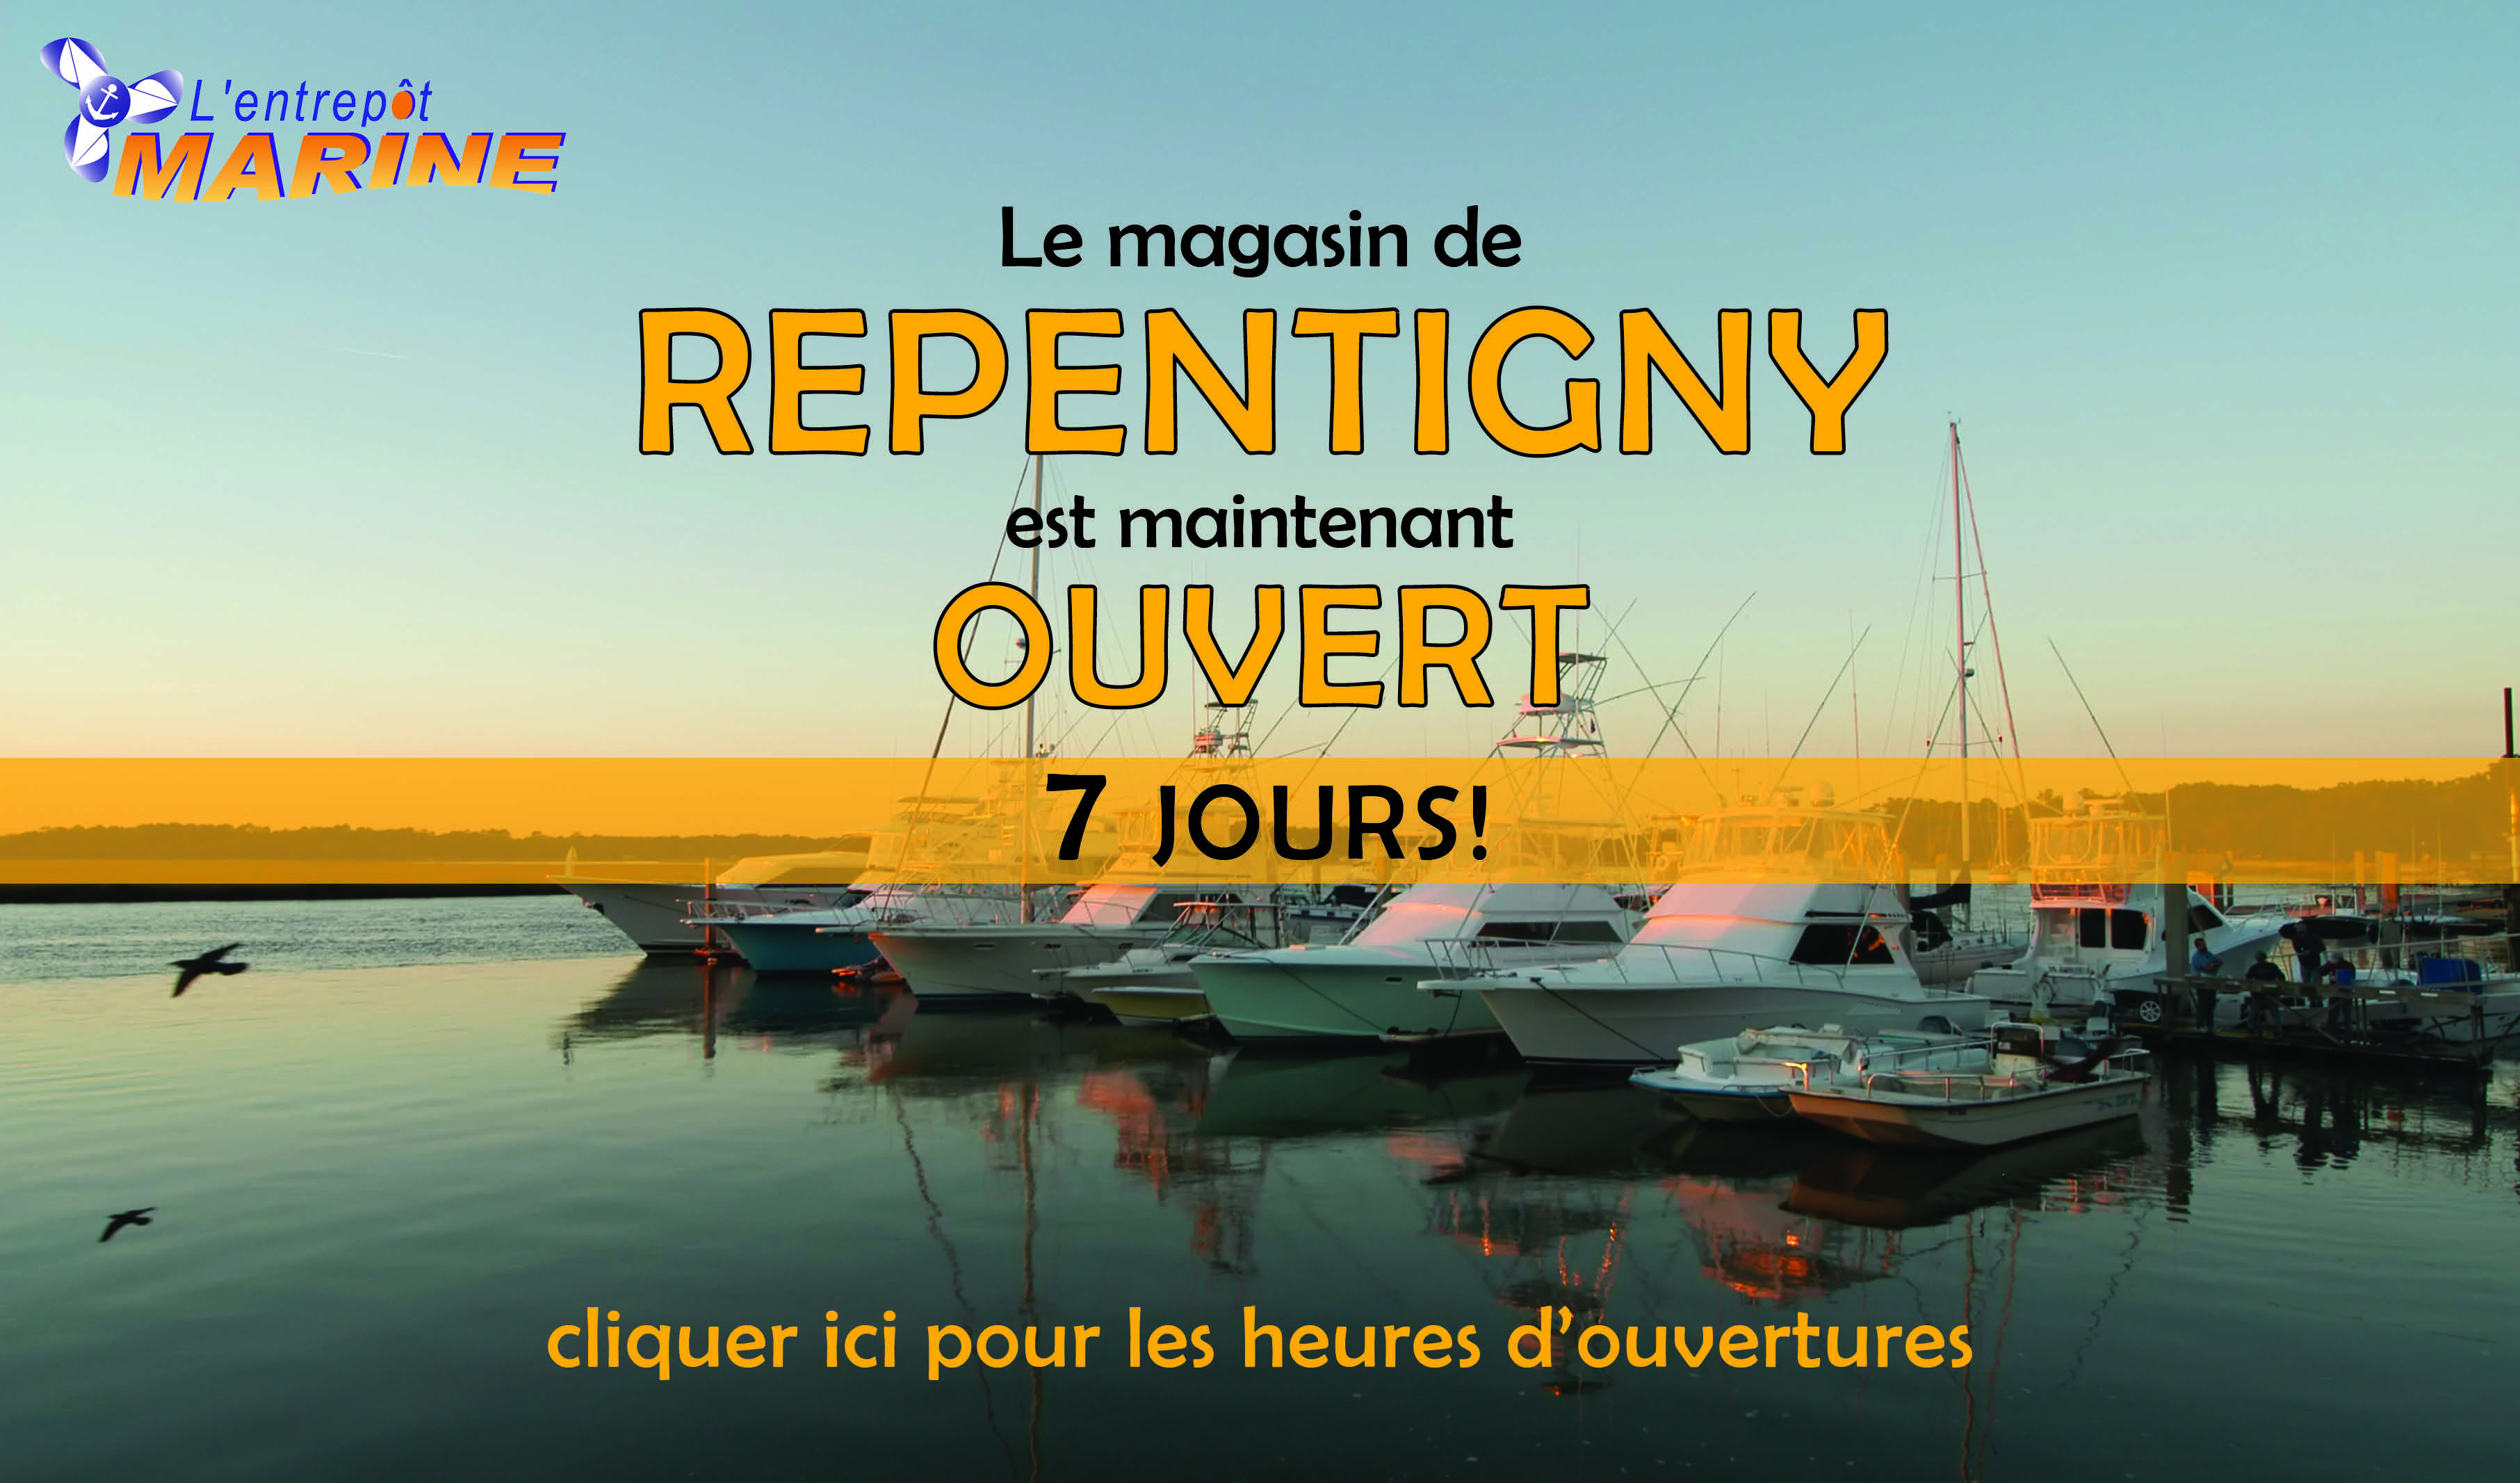 OPEN_REPENTIGNY